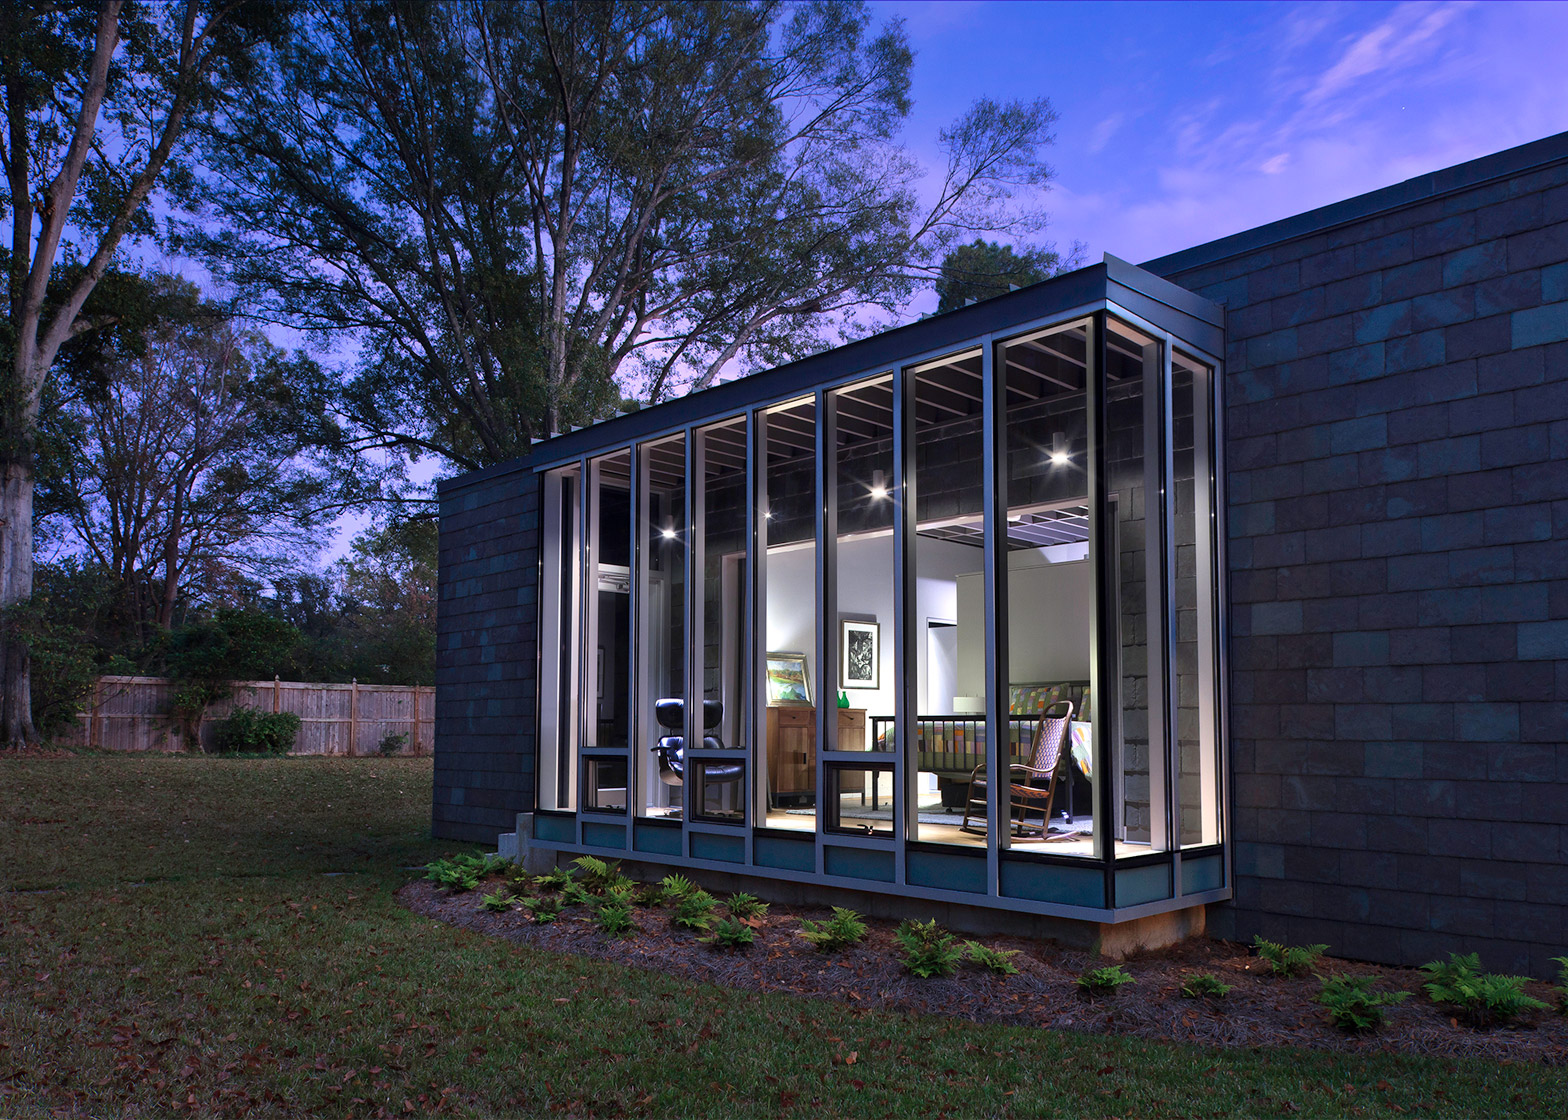 Oak Ridge House by Duvall Decker Architects